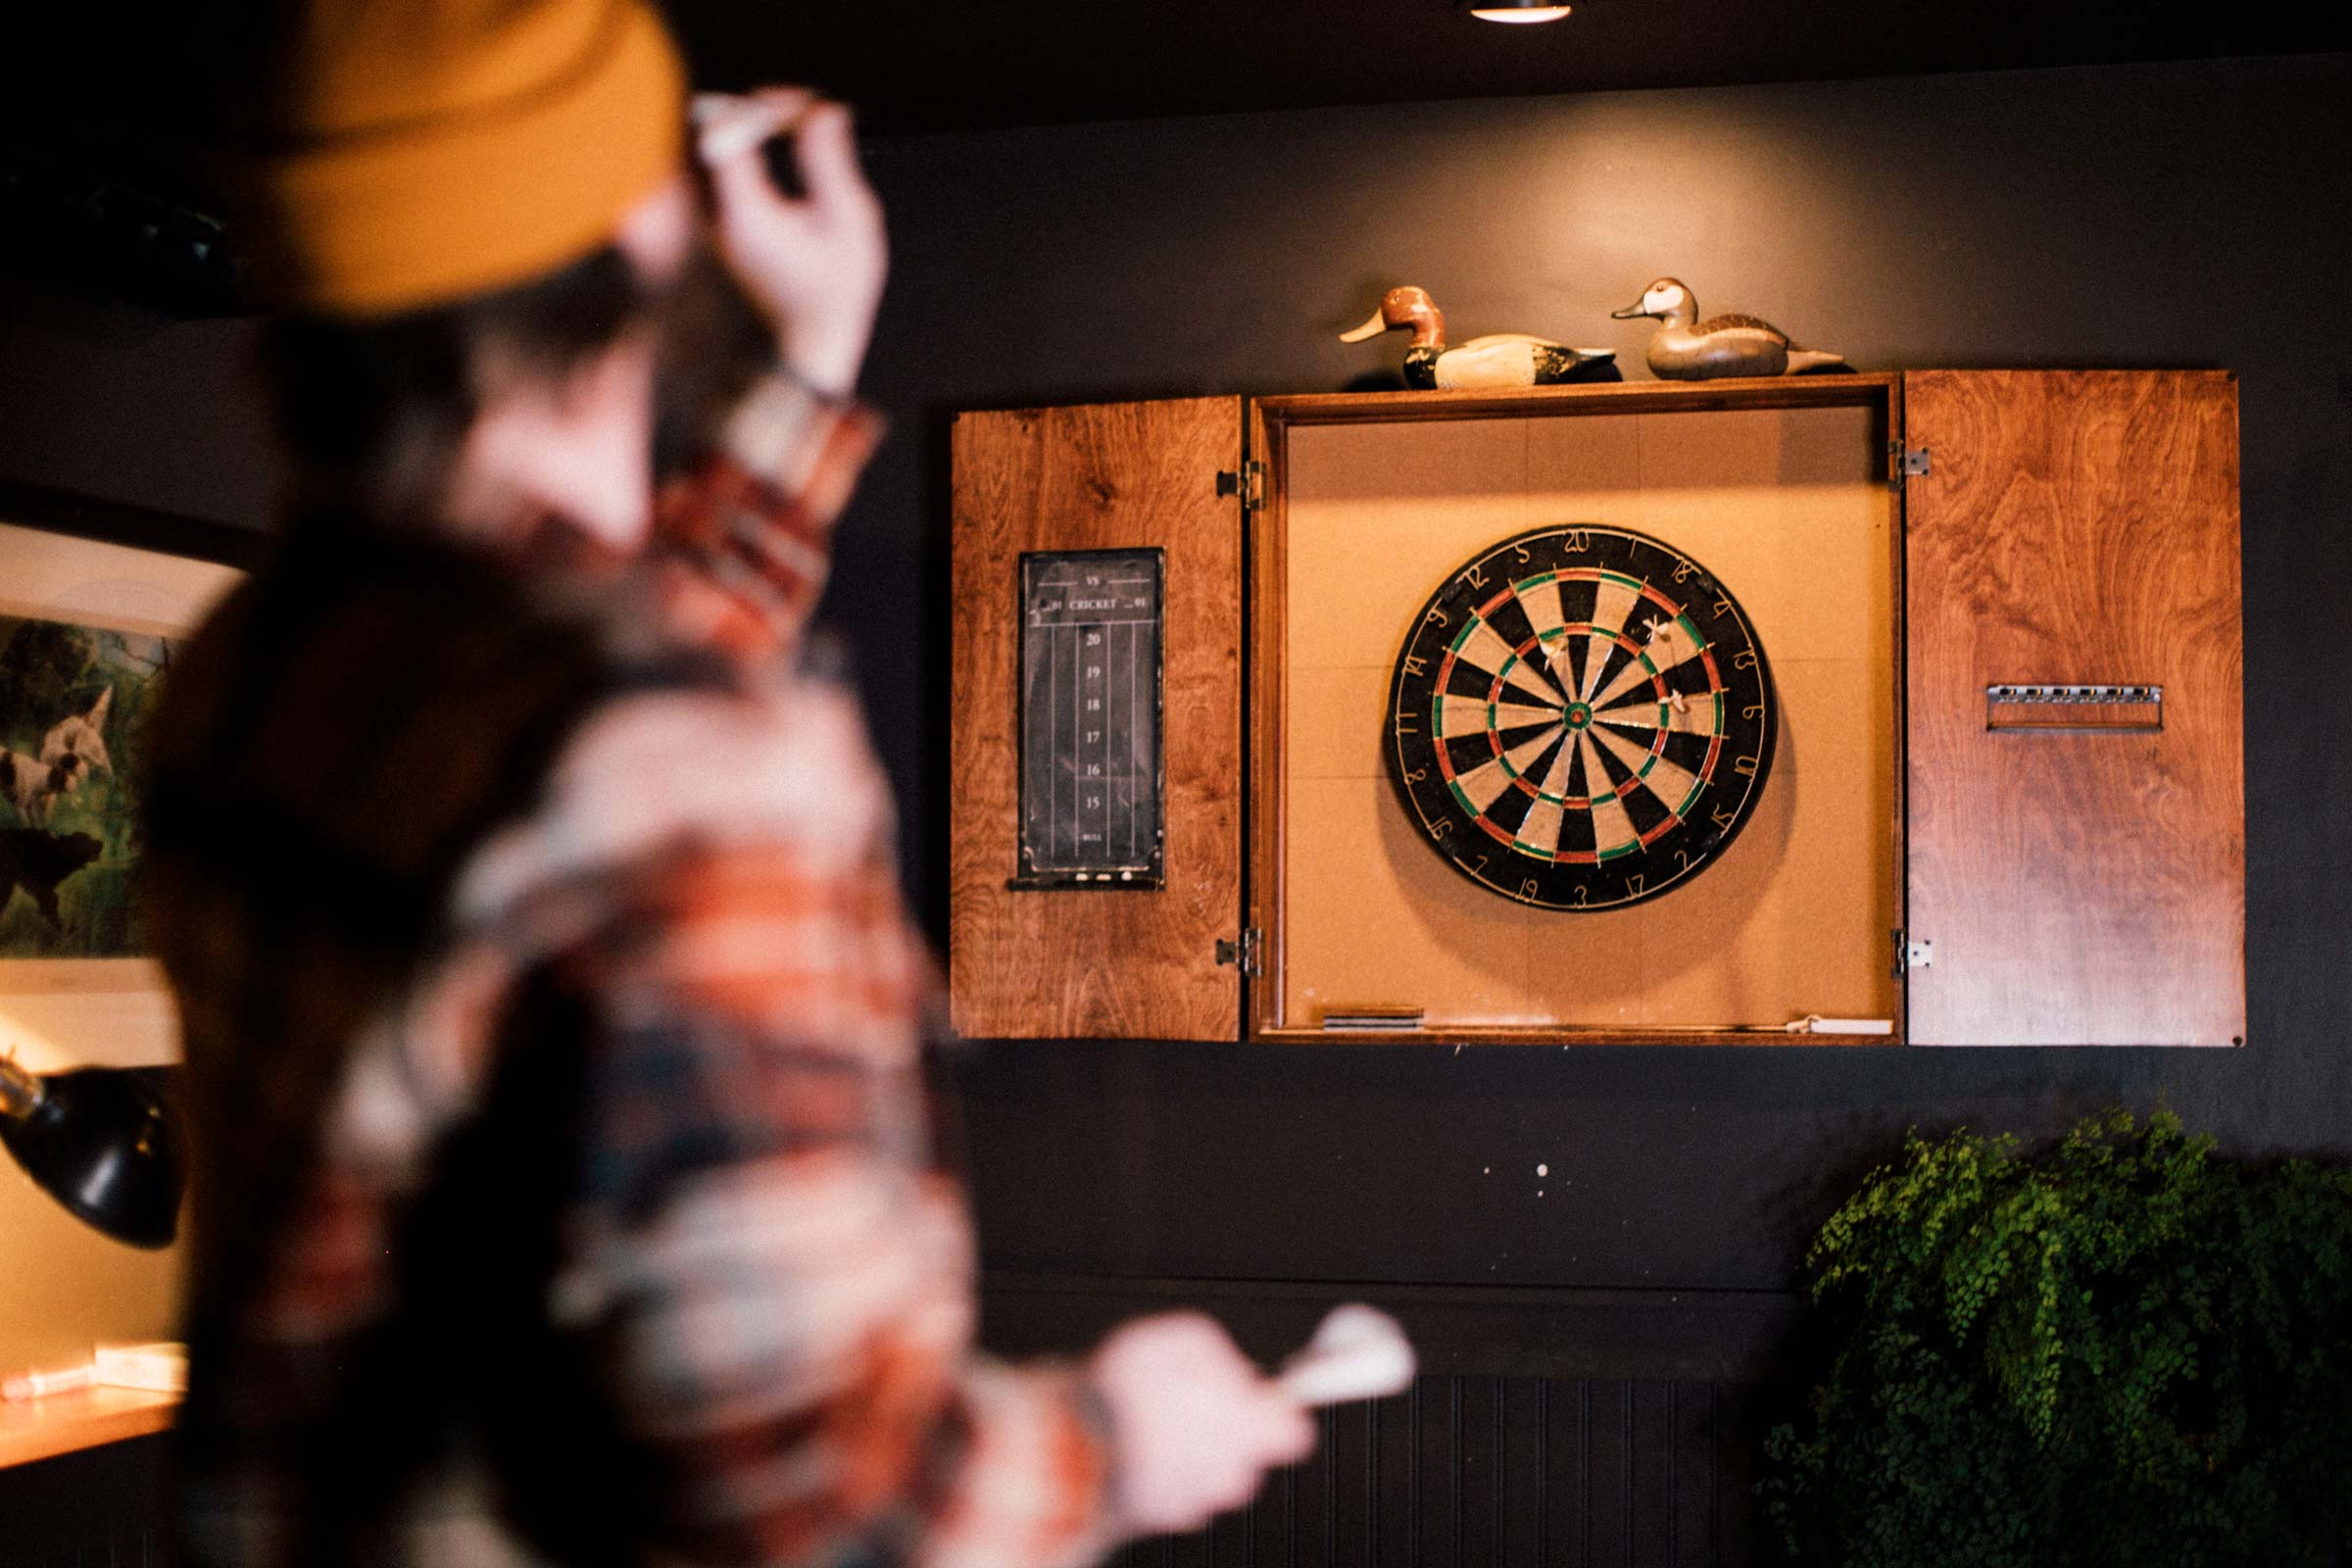 Enjoying a round of darts in the game room upstairs.